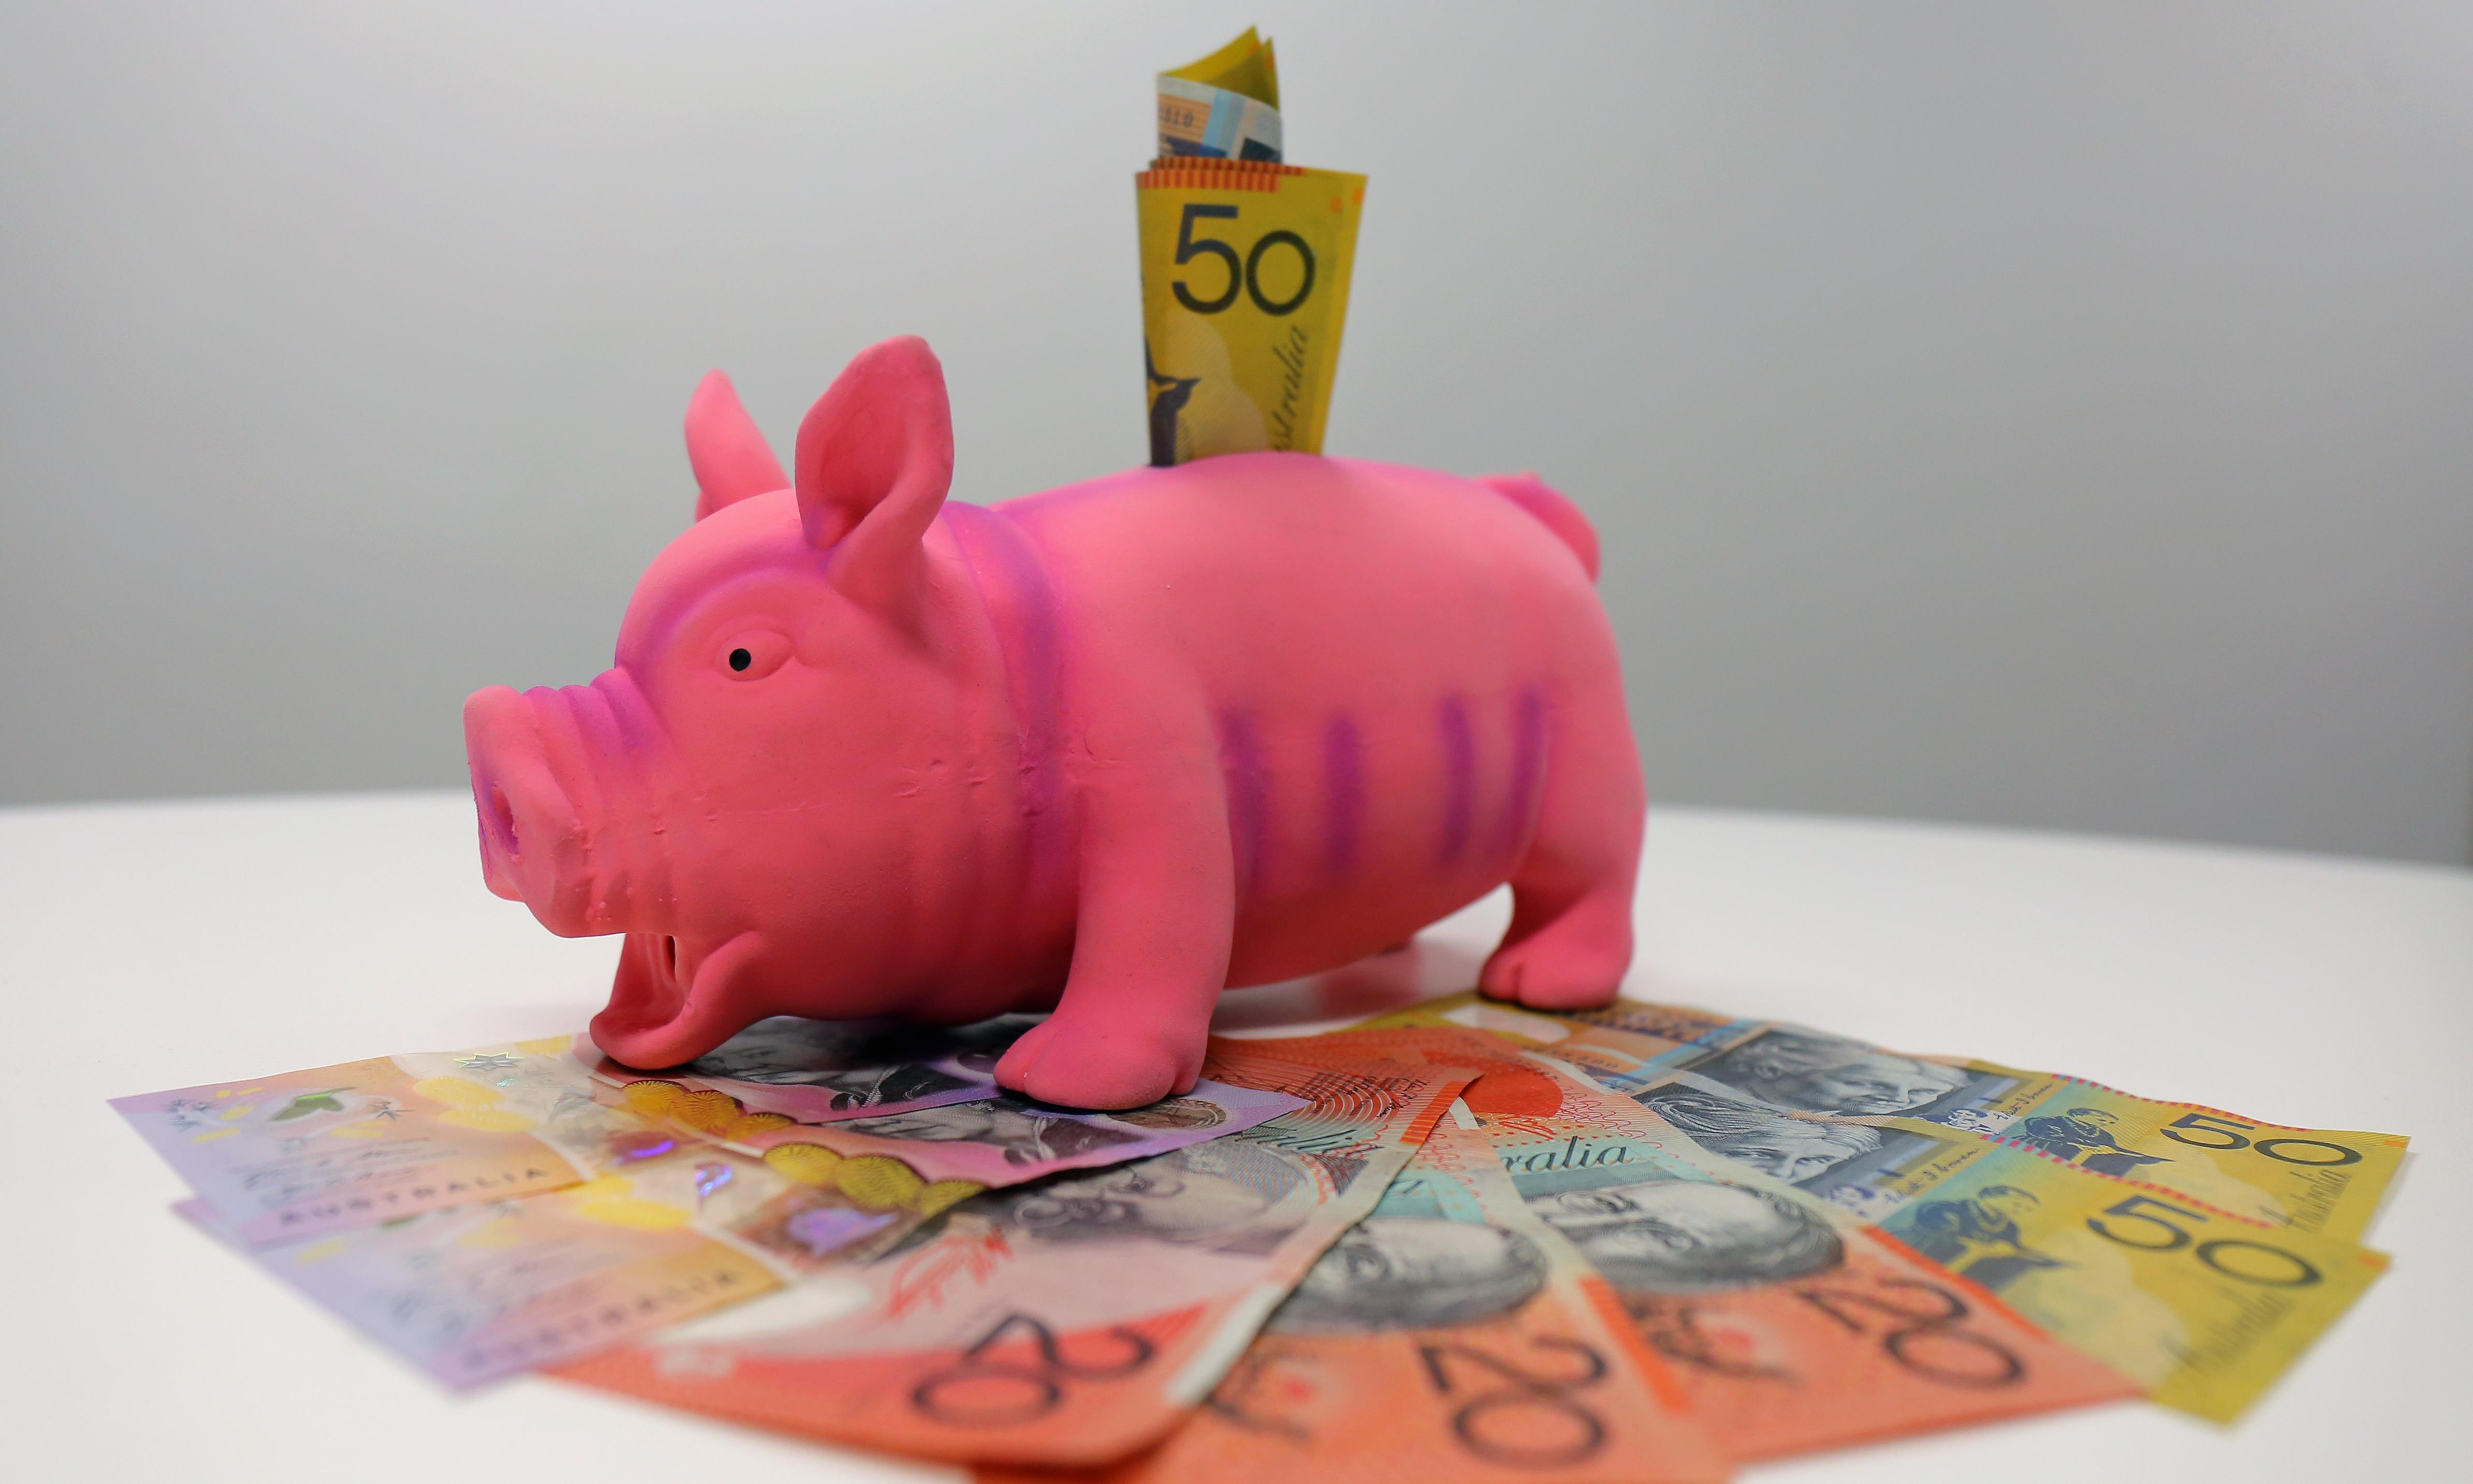 Turning the economic tide: could a radical monetary theory fix Australia's woes?